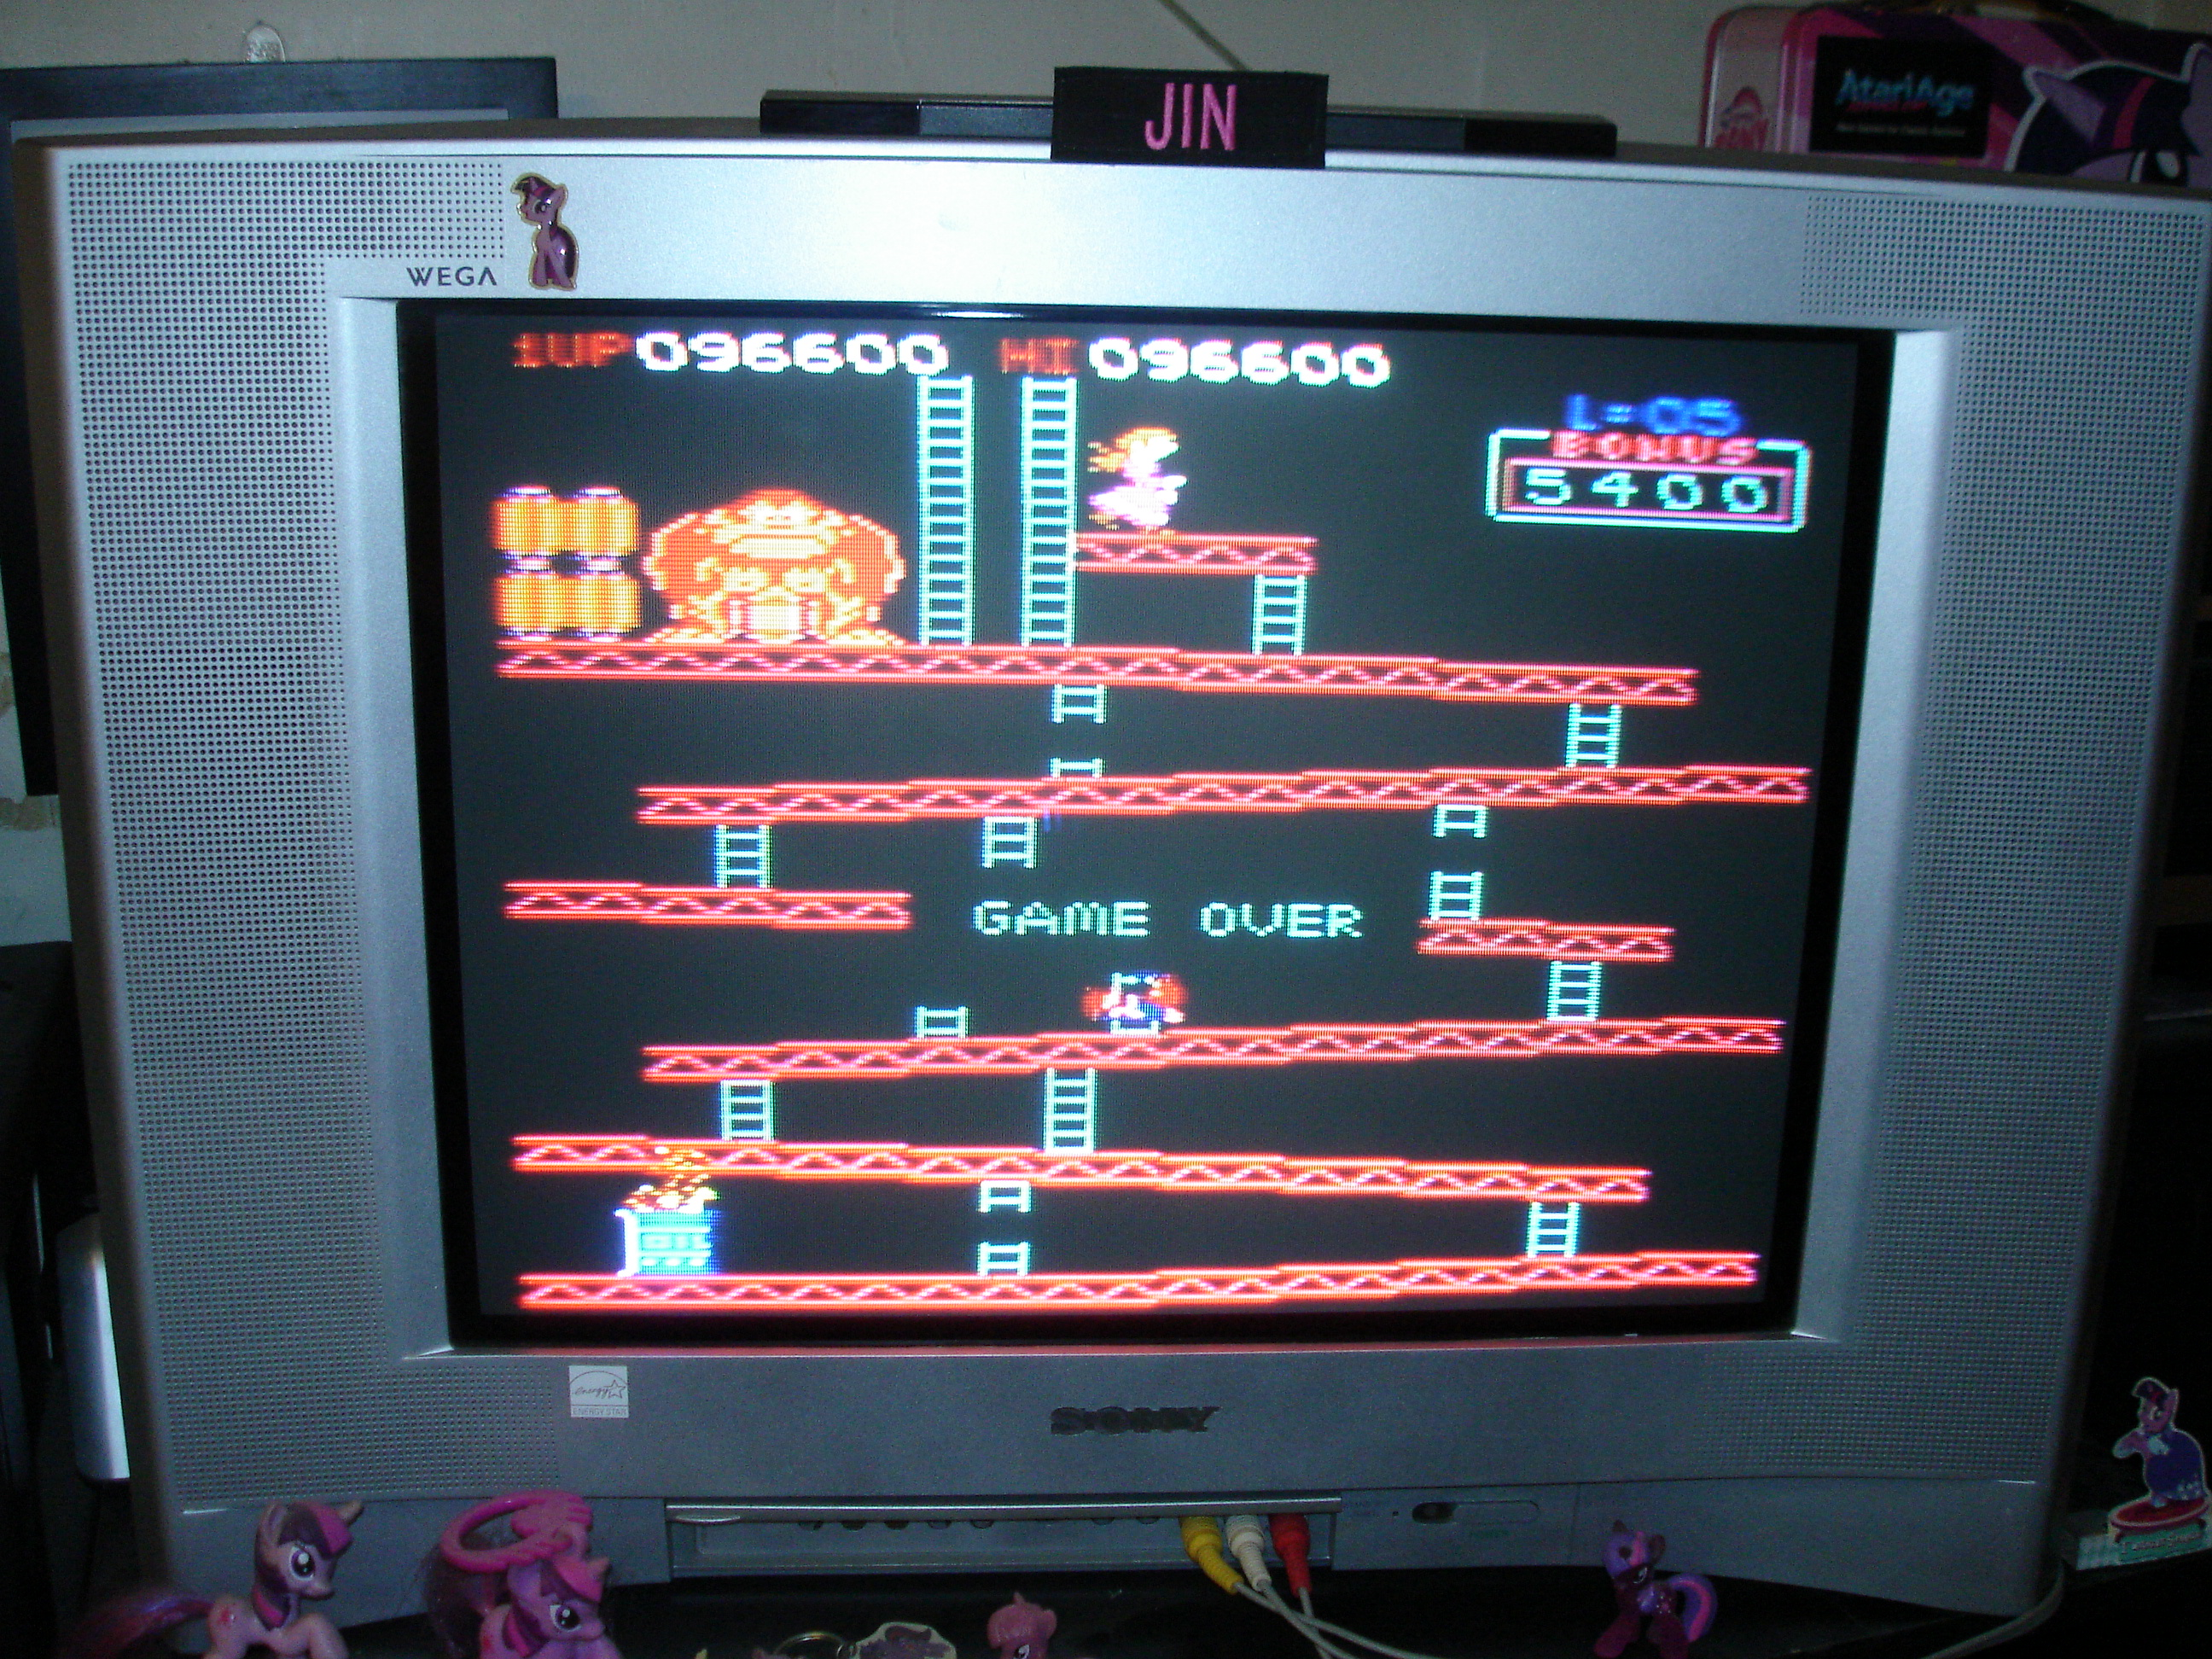 Donkey Kong PK [Start Level: One] [Screen Order: US] [Difficulty: Arcade] 96,600 points